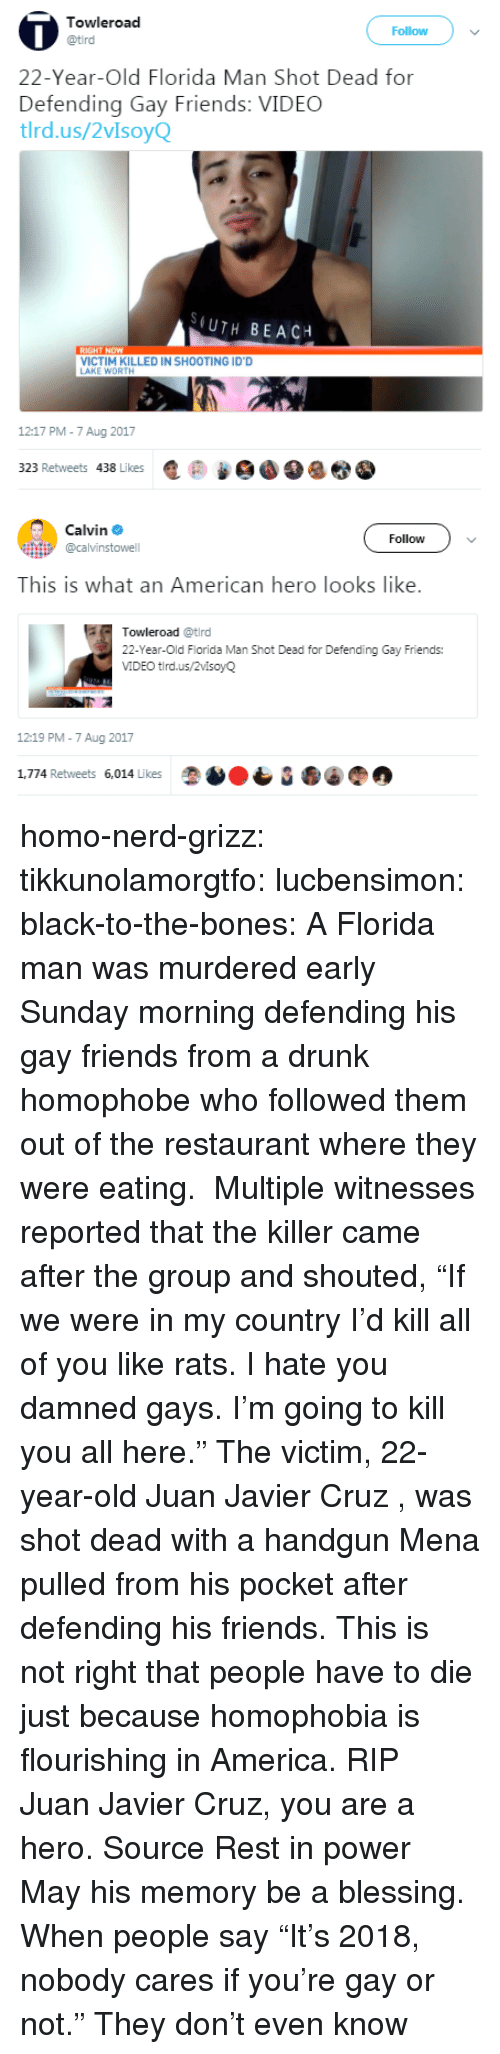 "the killer: Towleroad  Follow  22-Year-Old Florida Man Shot Dead for  Defending Gay Friends: VIDEC  tlrd.us/2vIsoyQ  (UTH BEACH  VICTIM KILLED IN SHOOTING ID'D  AKE WORTH  1217 PM-7 Aug 2017  323 Retweets 438 Likes匿@   Calvin Φ  @calvinstowell  Follow  This is what an American hero looks like.  Towleroad @tird  22-Year-Old Florida Man Shot Dead for Defending Gay Friends:  VIDEO tird.us/2vlsoyQ  12:19 PM-7 Aug 2017  1,774 Retweets 6,014 Likes homo-nerd-grizz: tikkunolamorgtfo:  lucbensimon:  black-to-the-bones:     A Florida man was murdered early Sunday morning defending his gay friends from a drunk homophobe who followed them out of the restaurant where they were eating.  Multiple witnesses reported that the killer came after the group and shouted, ""If we were in my country I'd kill all of you like rats. I hate you damned gays. I'm going to kill you all here.""   The victim, 22-year-old Juan Javier Cruz , was shot dead with a handgun Mena pulled from his pocket after defending his friends.   This is not right that people have to die just because homophobia is flourishing in America. RIP   Juan Javier Cruz, you are a hero. Source   Rest in power  May his memory be a blessing.   When people say ""It's 2018, nobody cares if you're gay or not."" They don't even know"